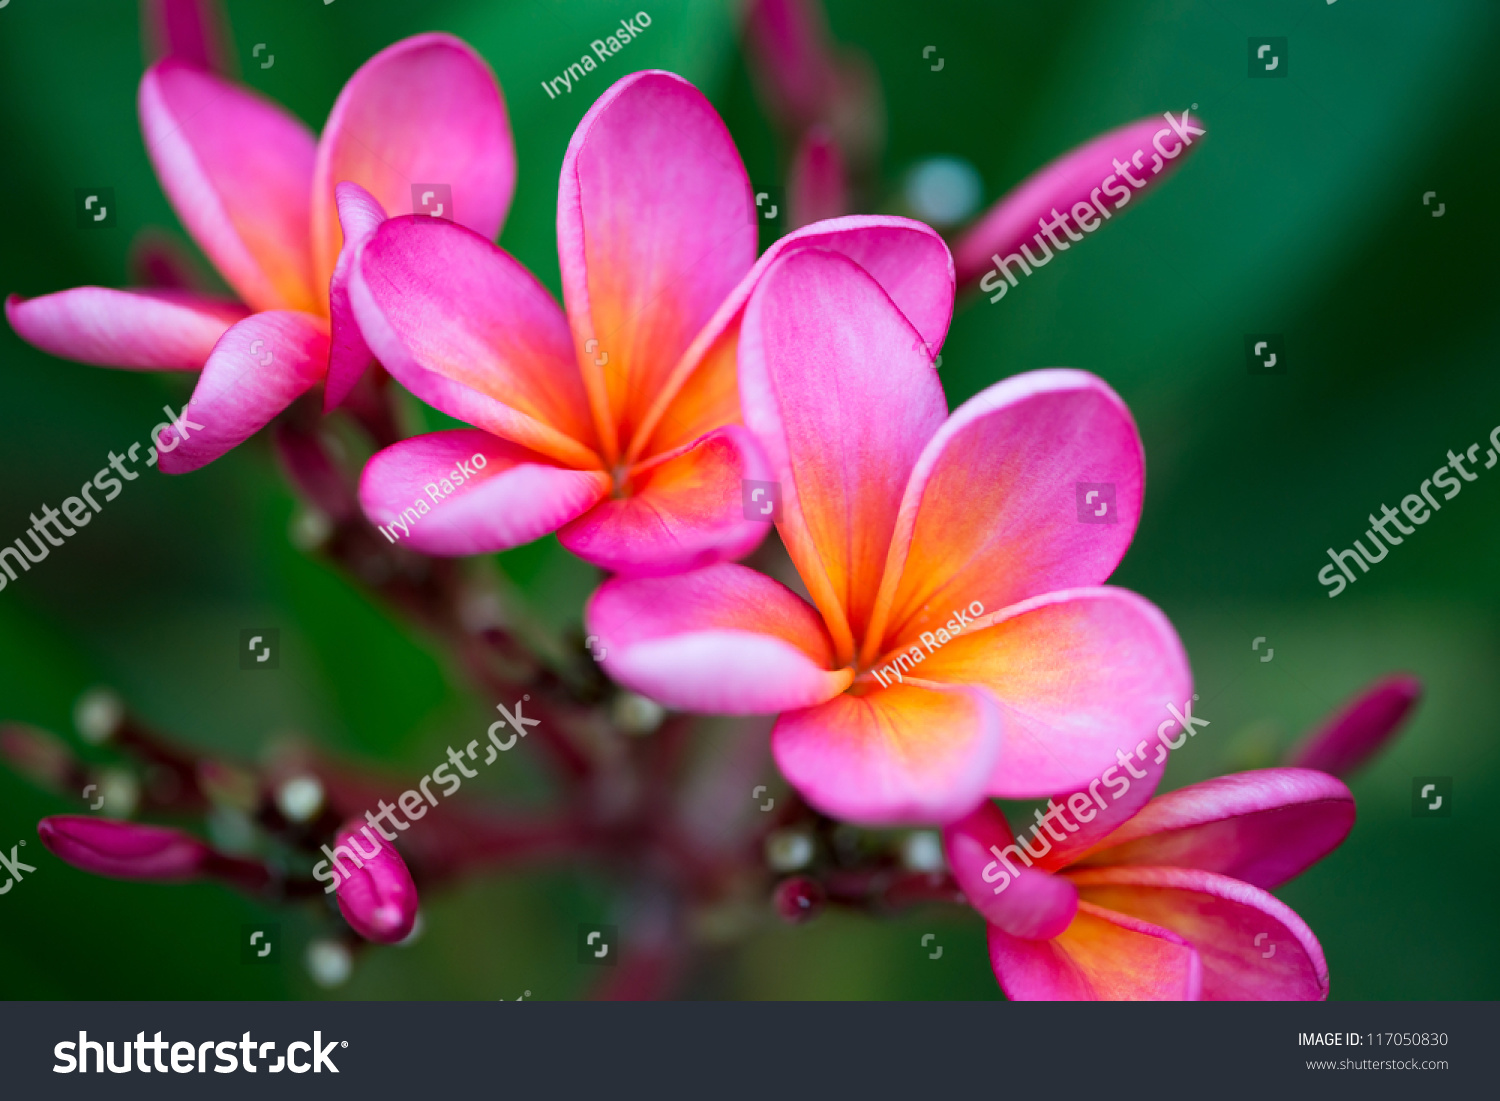 Branch tropical pink flowers frangipani plumeria stock photo branch of tropical pink flowers frangipani plumeria on dark green leaves background dhlflorist Gallery